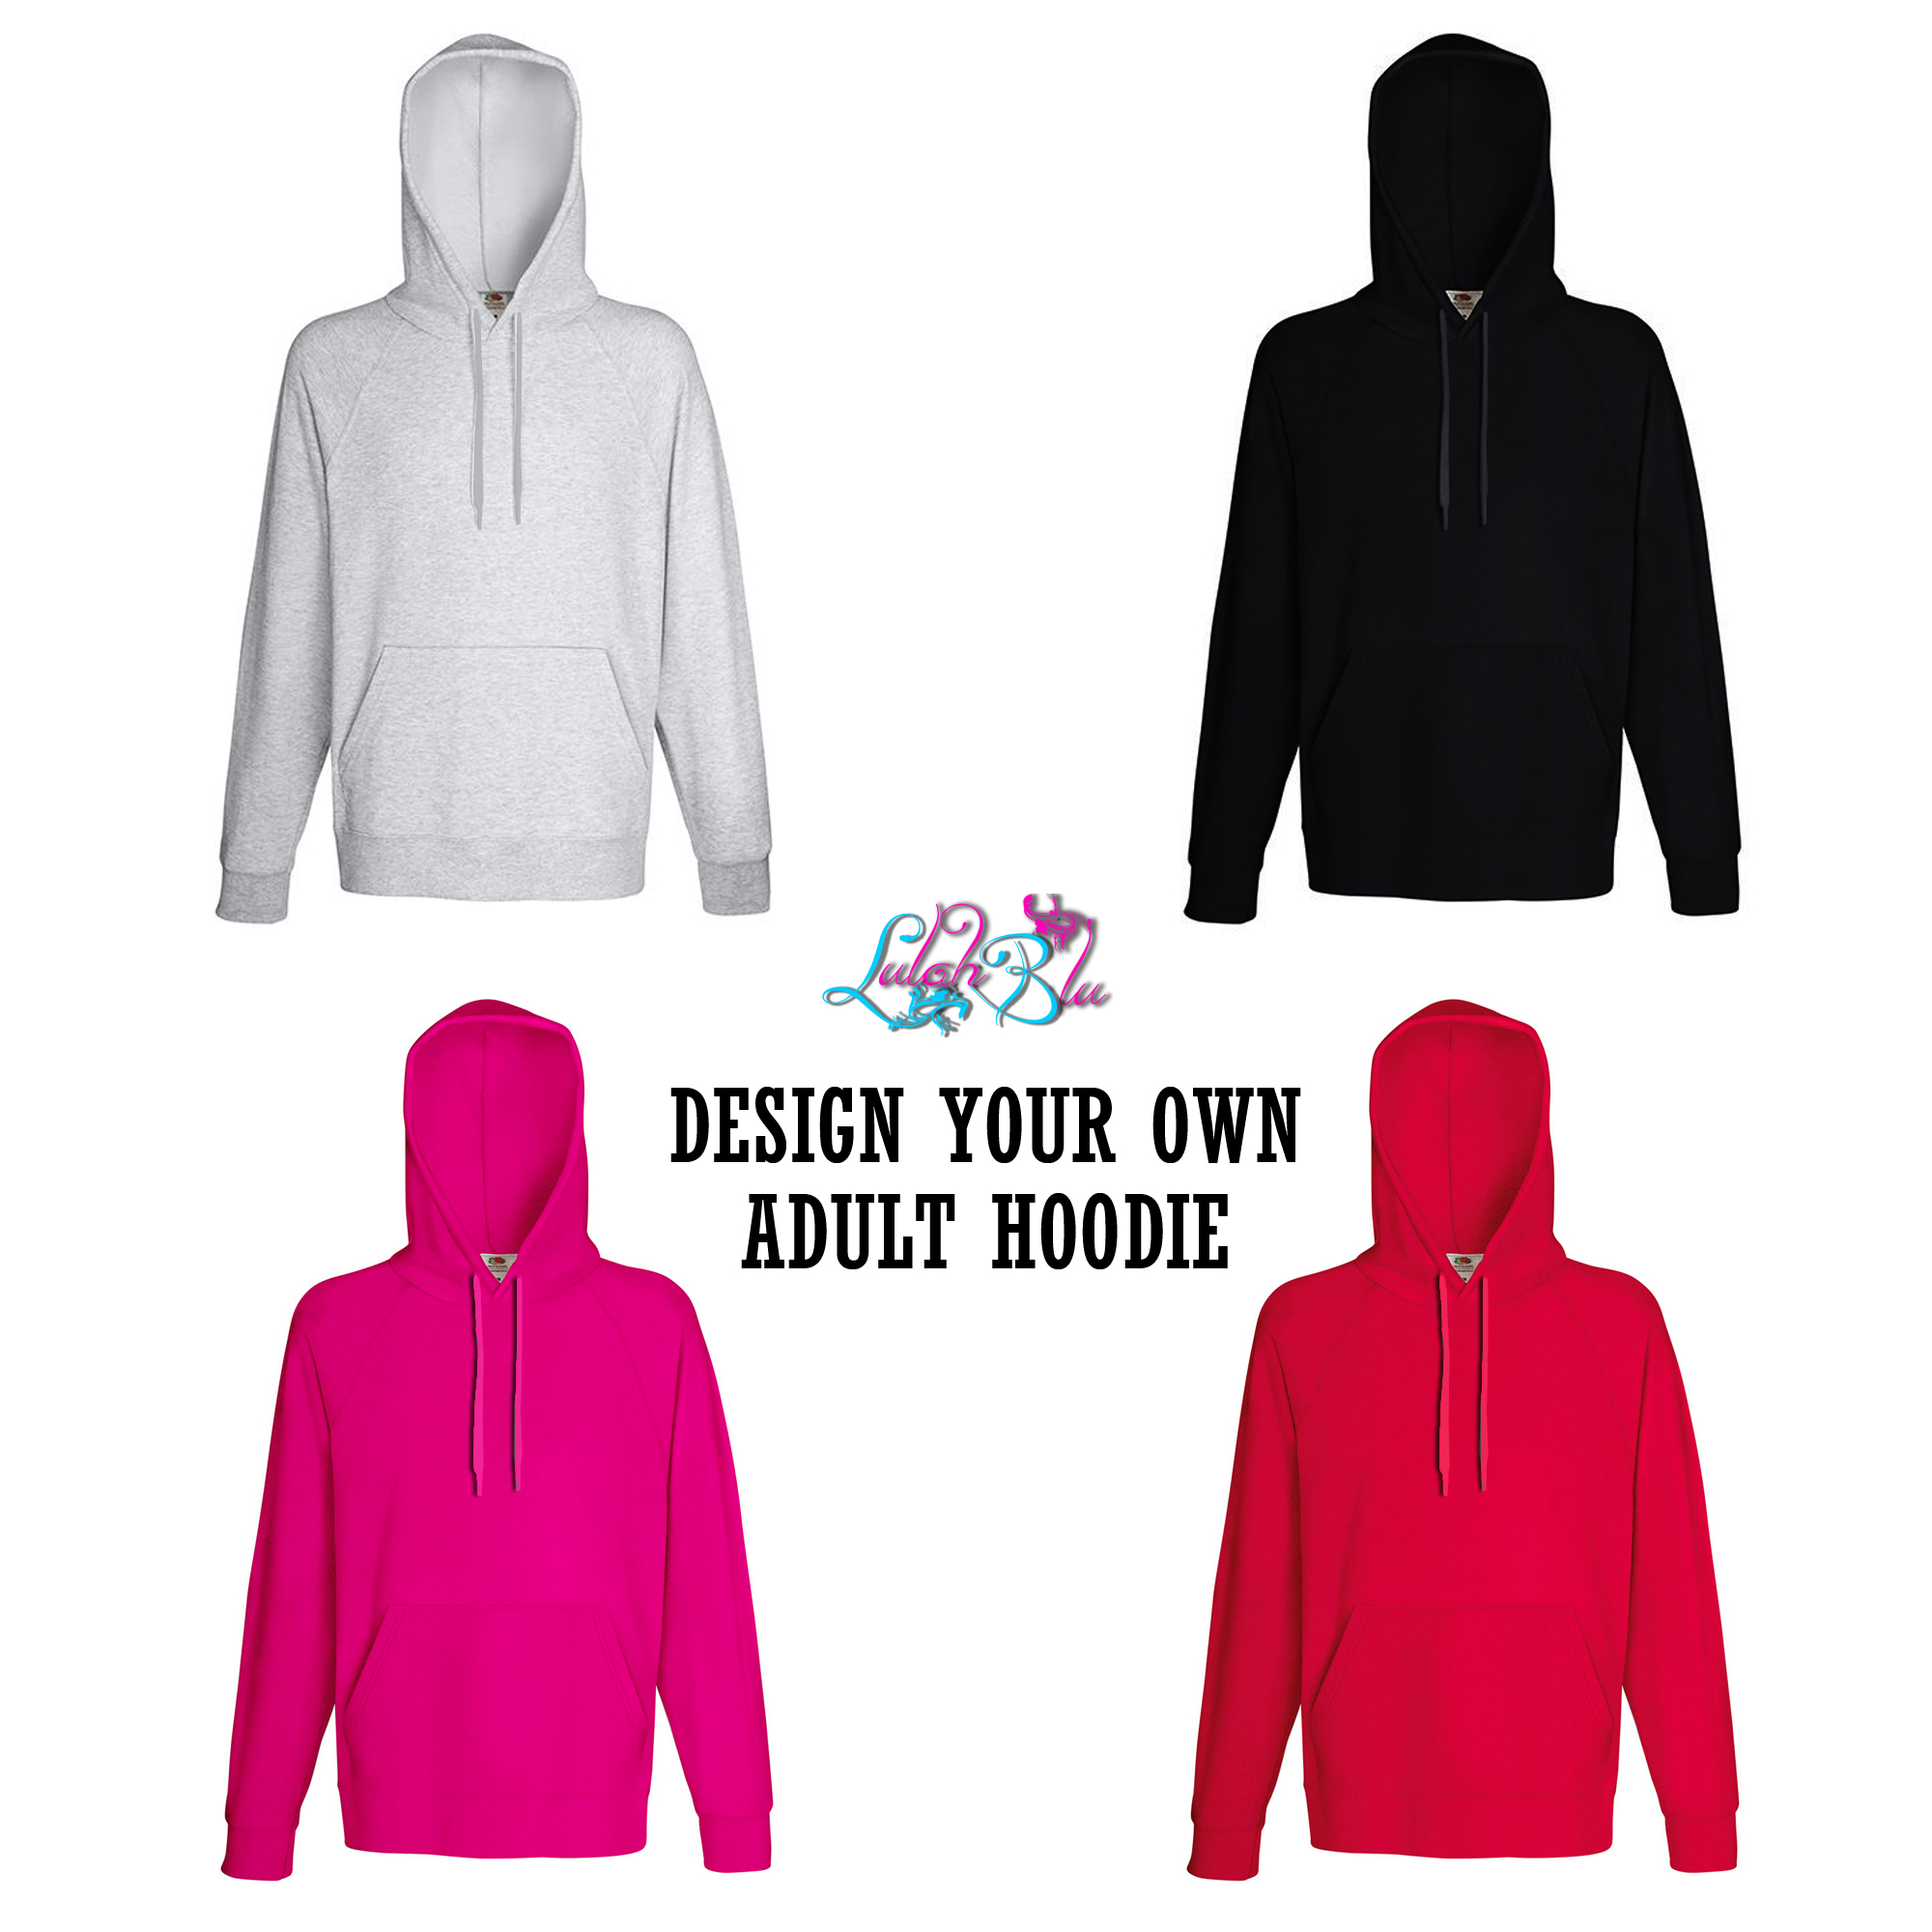 How To Design Your Own Hoodie At Home: Design Your Own Adult Hoodie